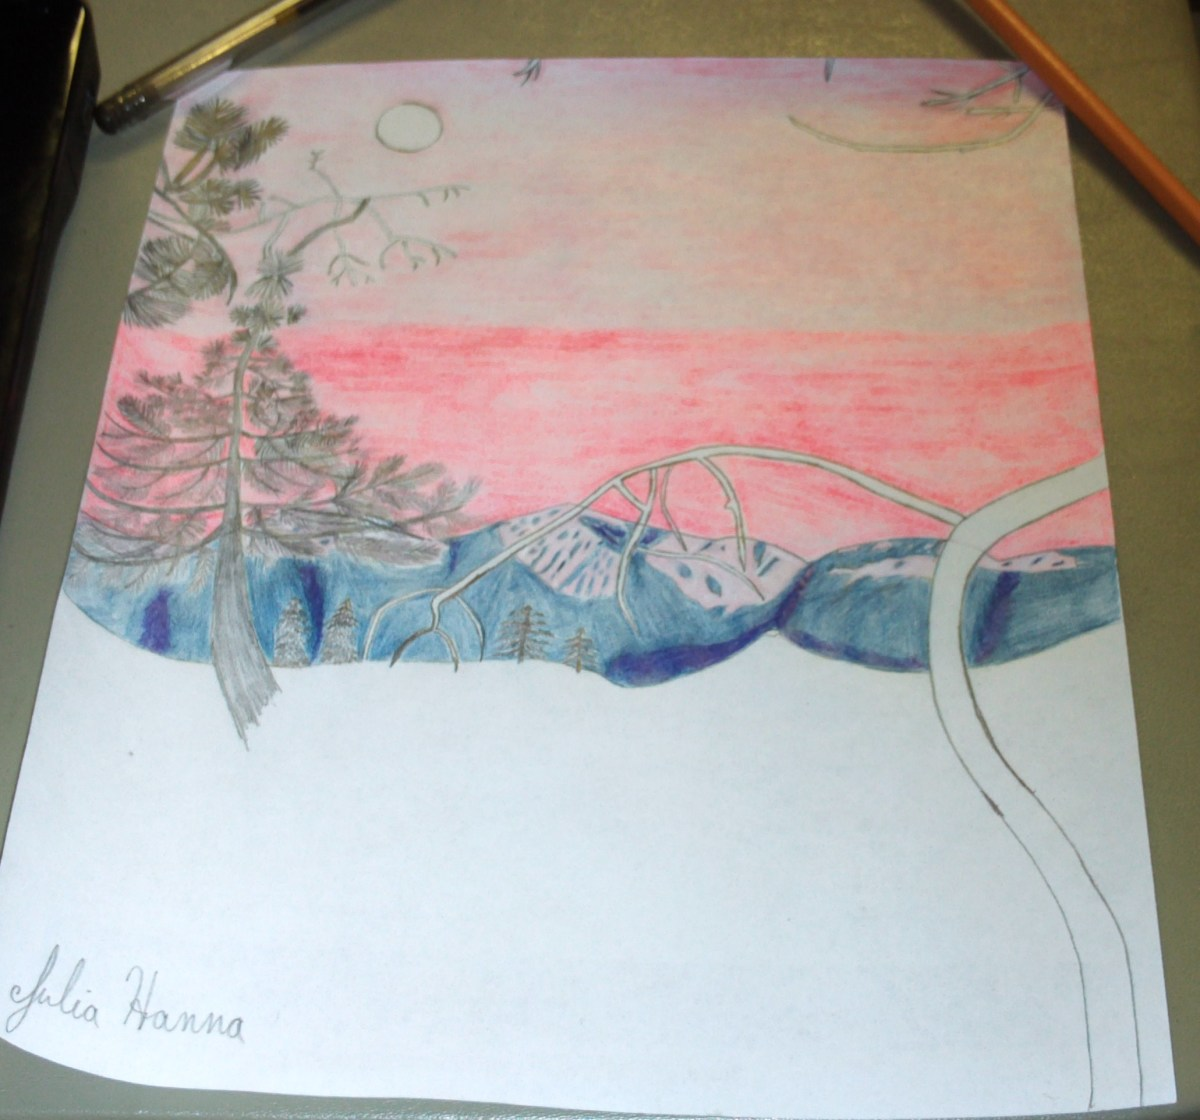 Here I finished coloring in the sunset portion of the sky.